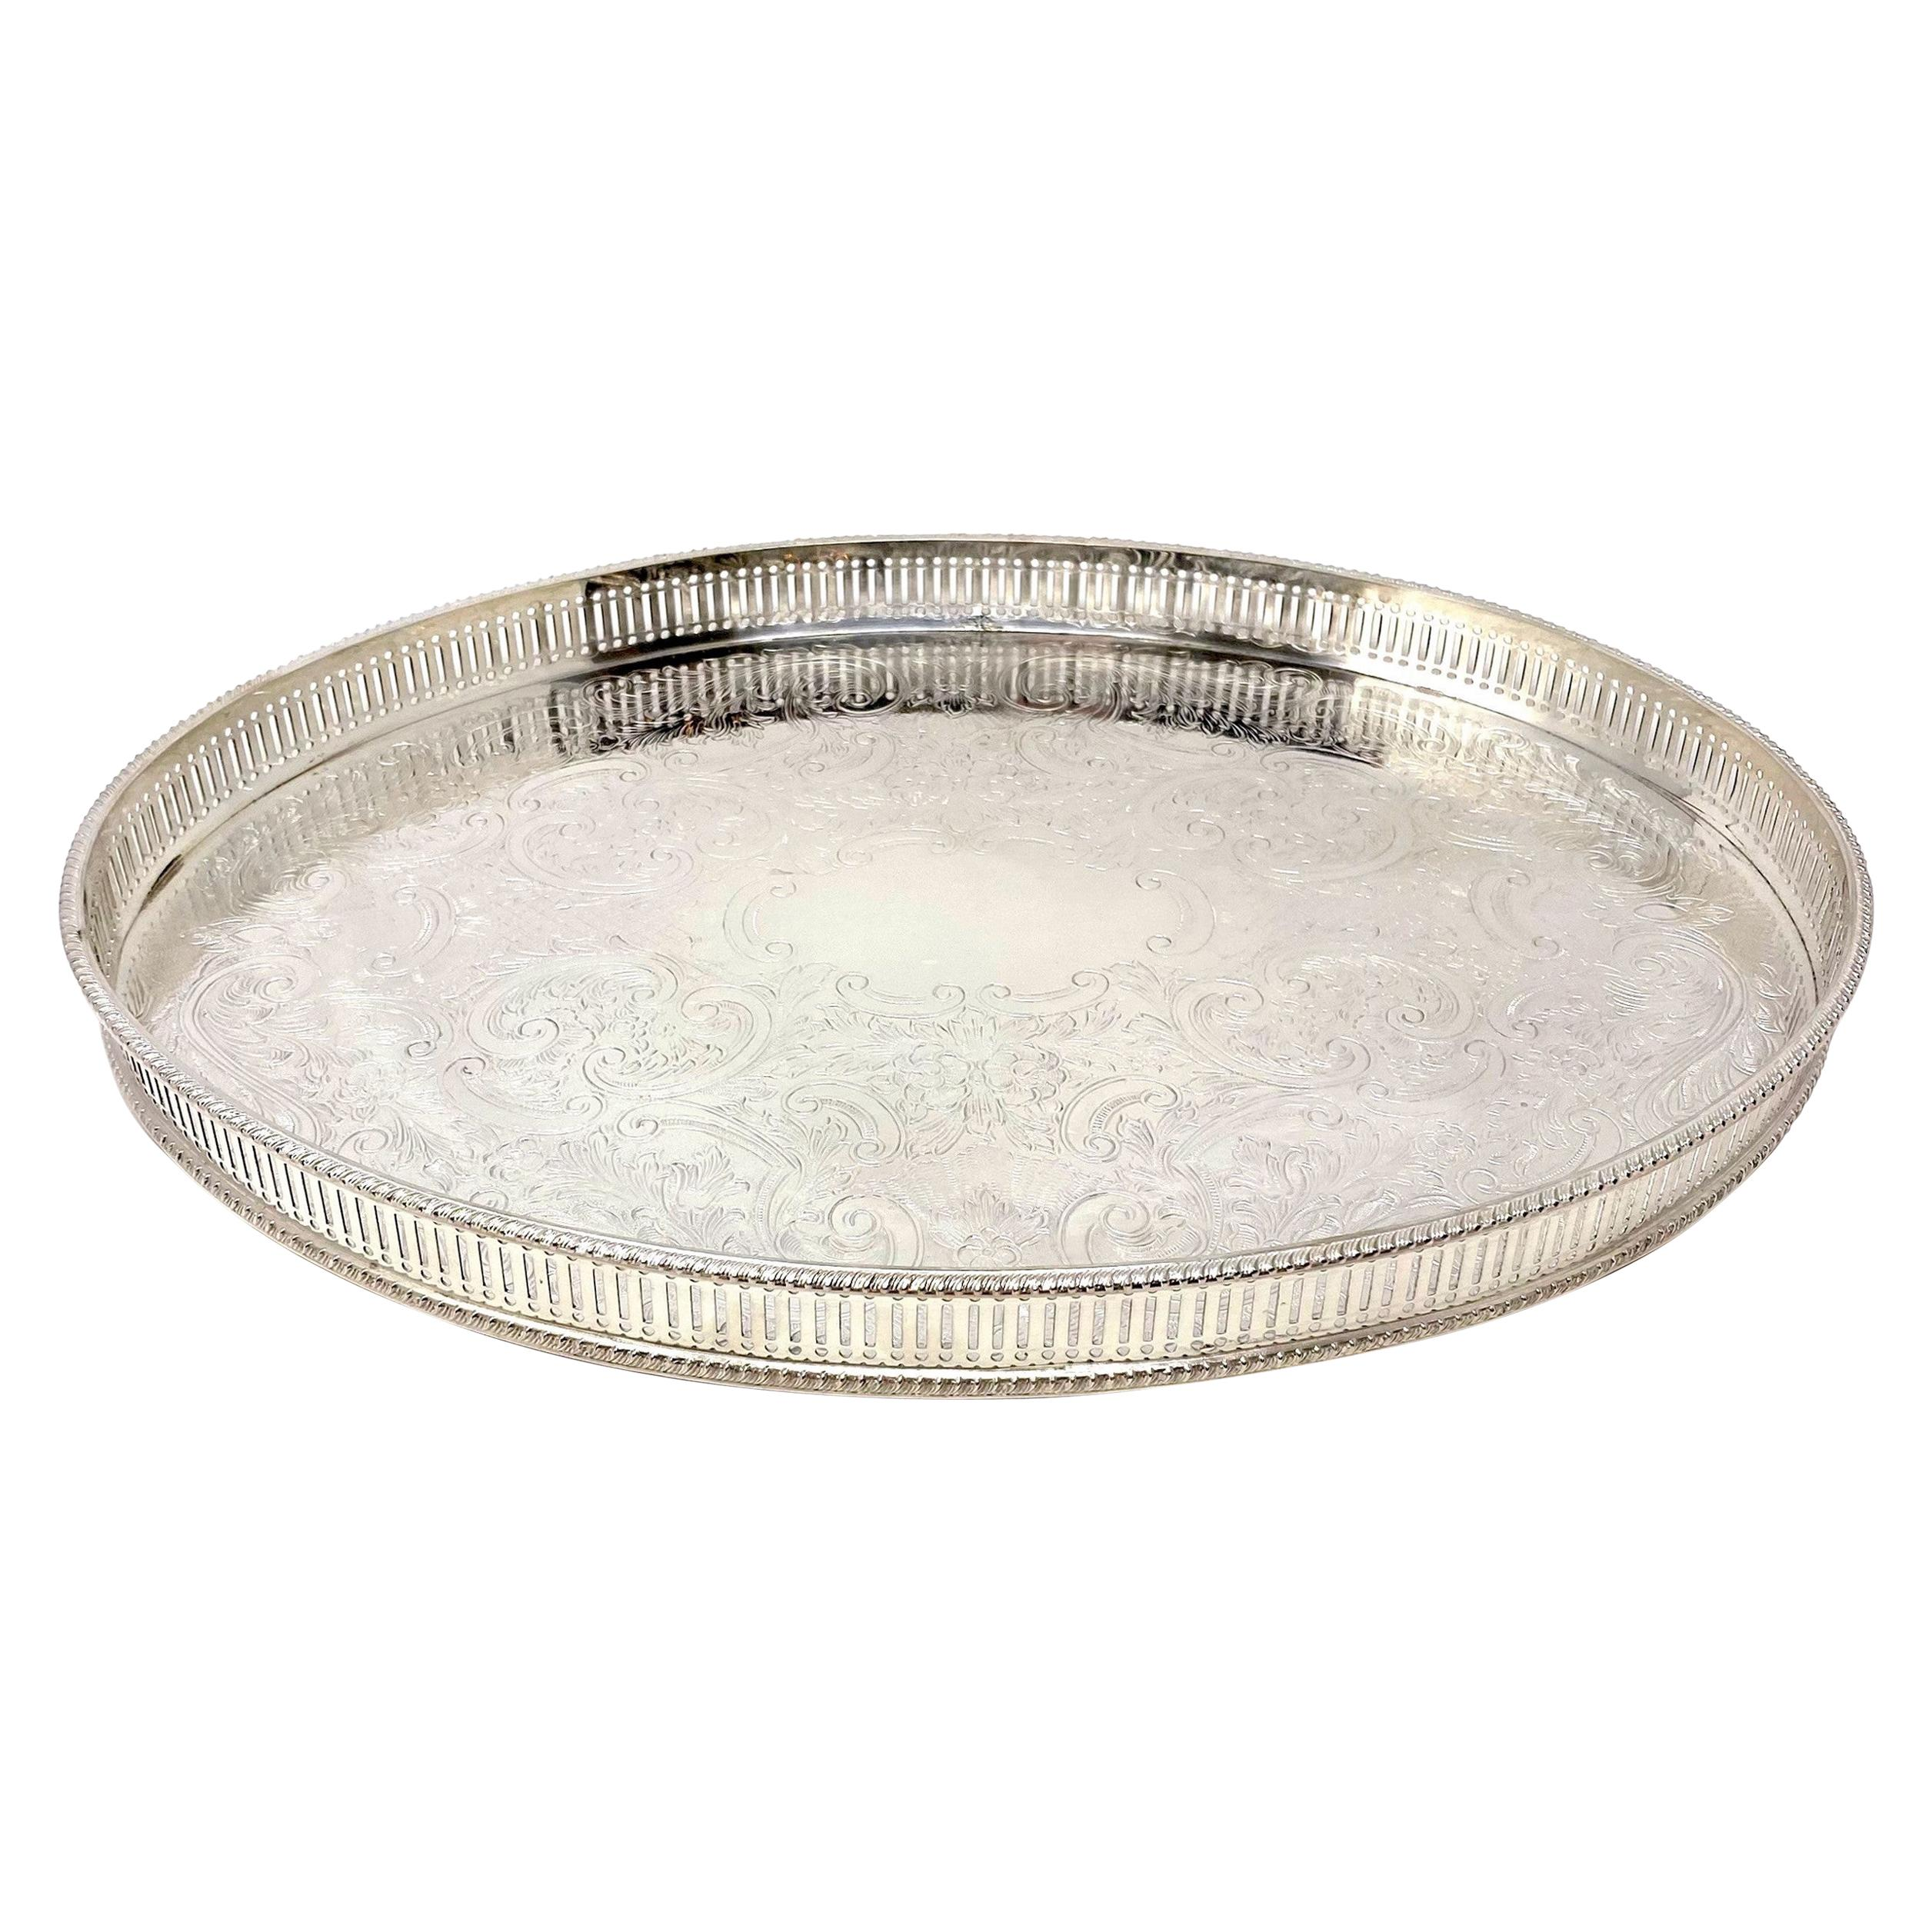 Handmade and Engraved English Silver Plated Footed Oval Tray with Gallery